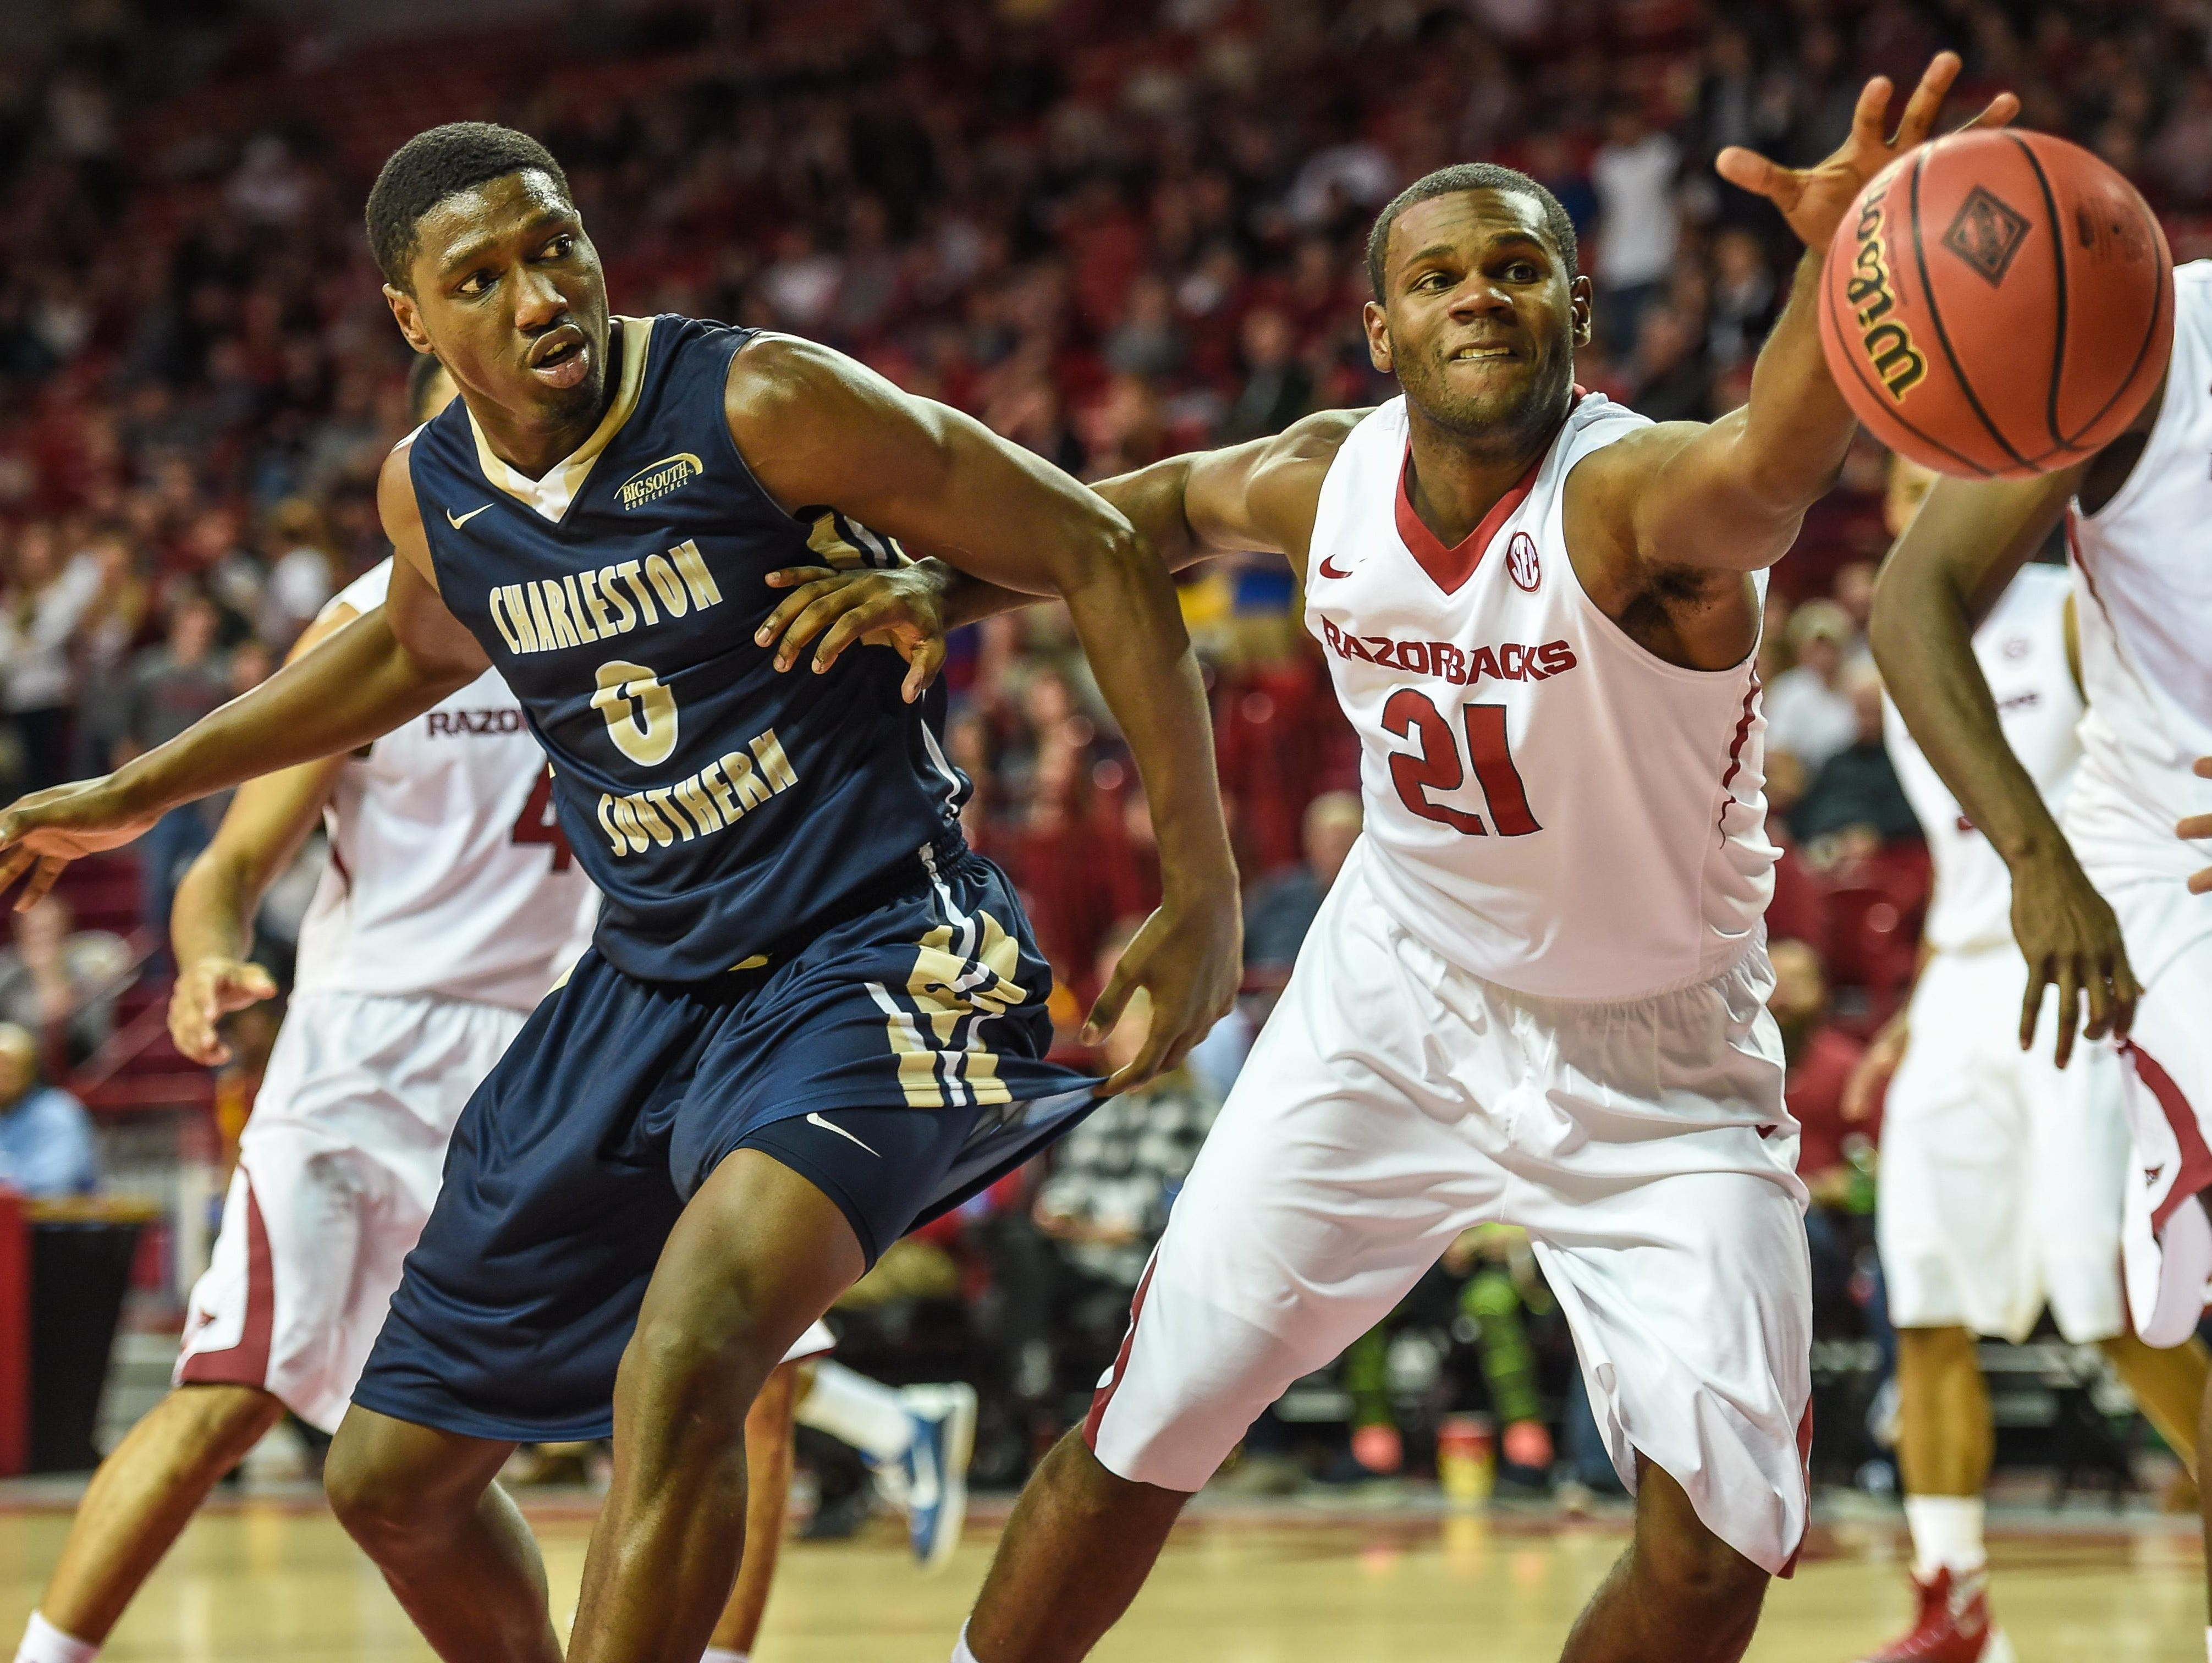 Arkansas guard Manuale Watkins (21) fights for the ball during a game between the Razorbacks and Charleston Southern on Nov. 20.